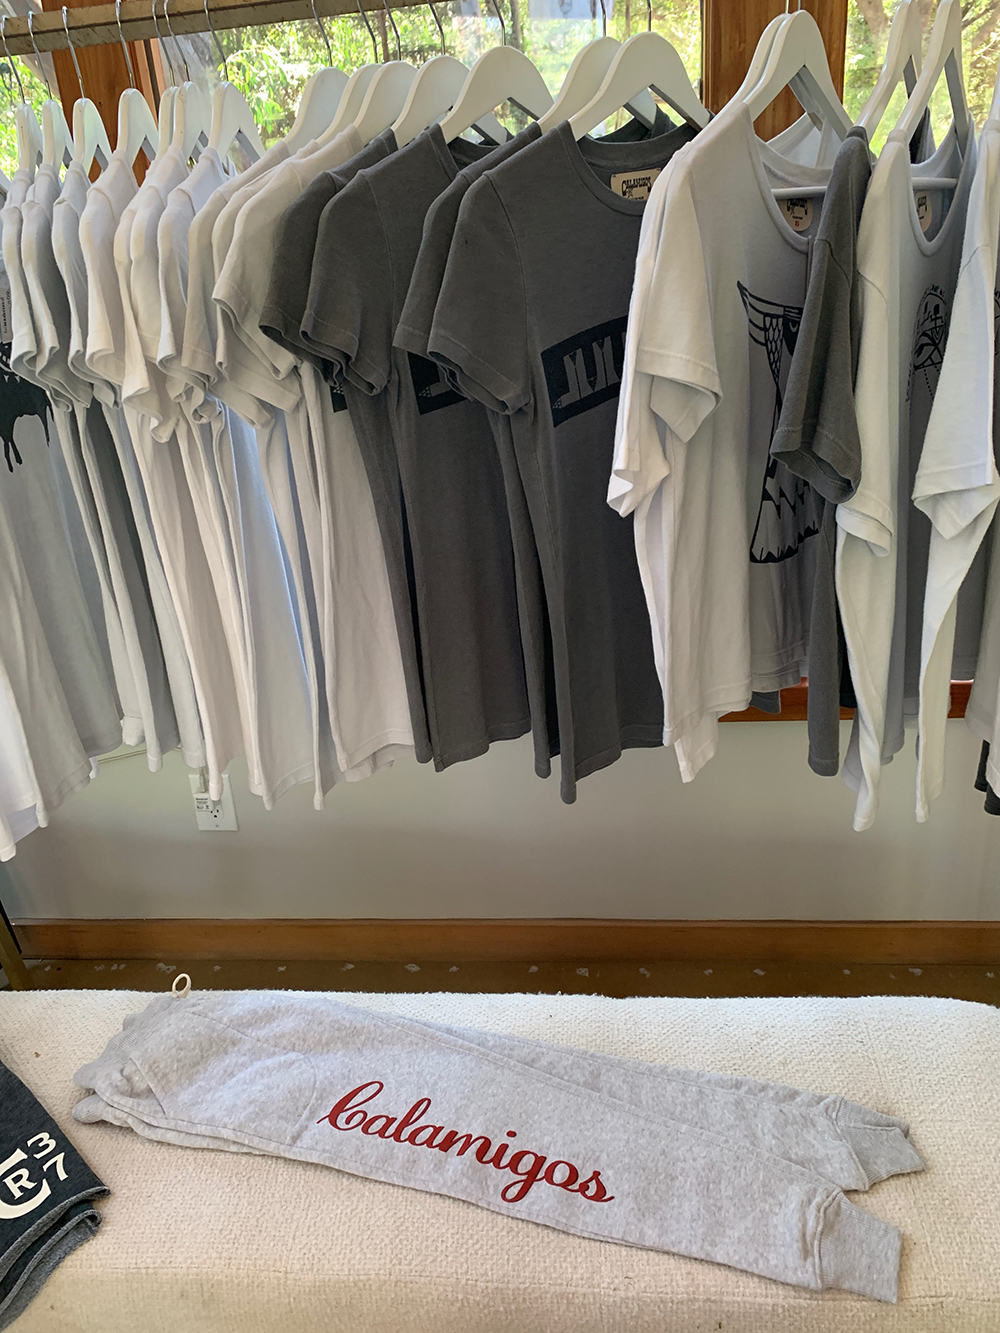 Guests can purchase Calamigos-themed merchandise.